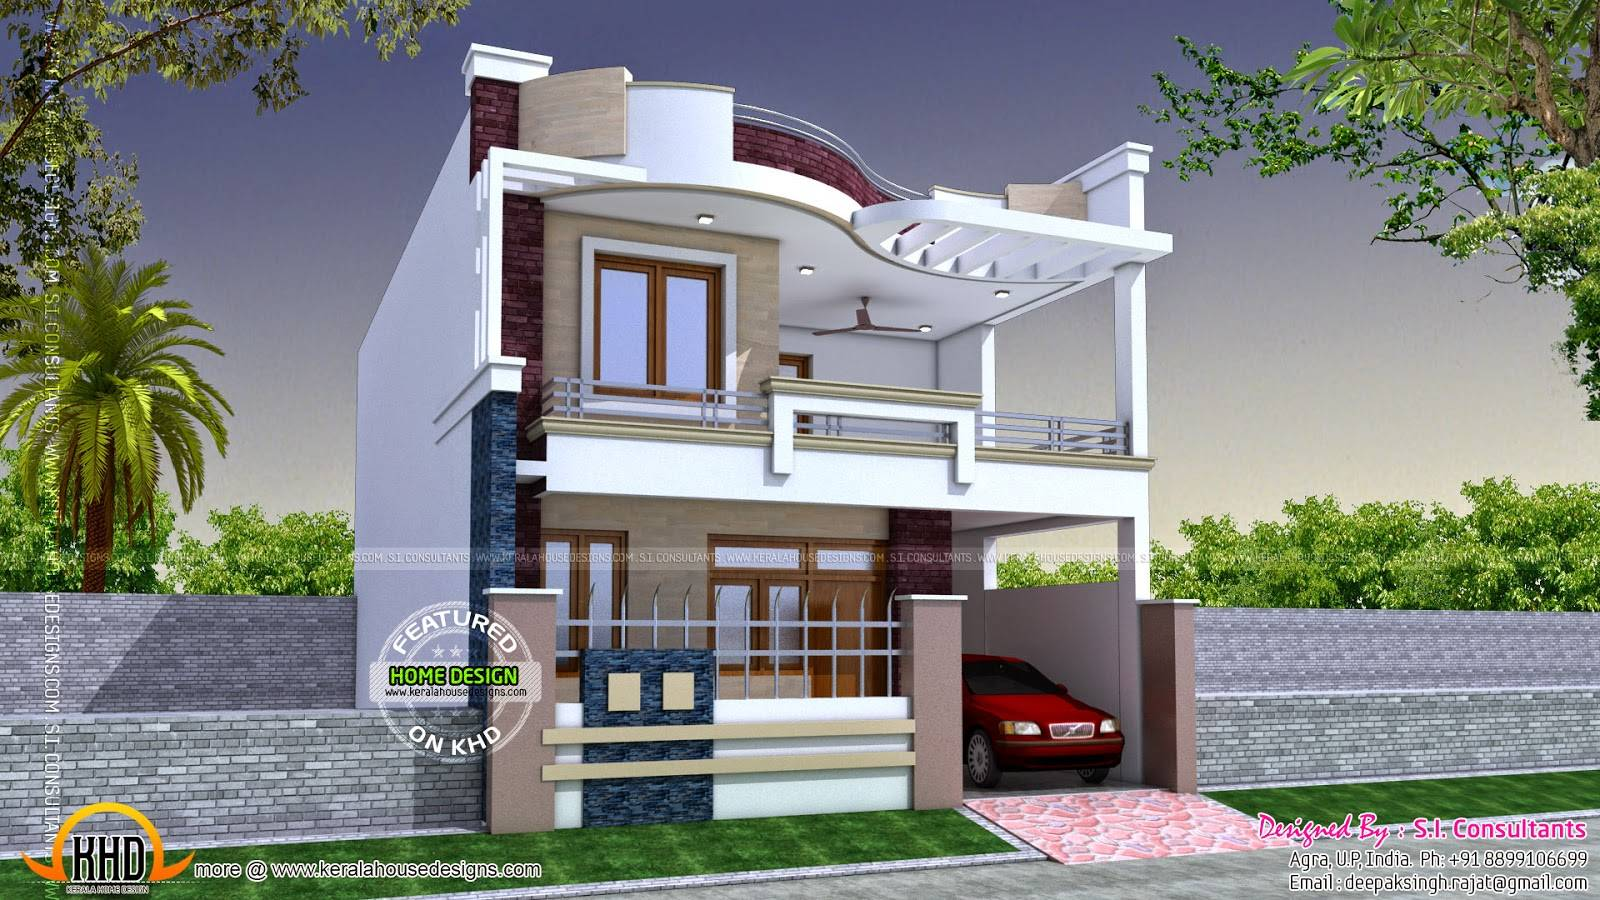 Home Cube Simple House Interesting Homes Design House Plans 170070